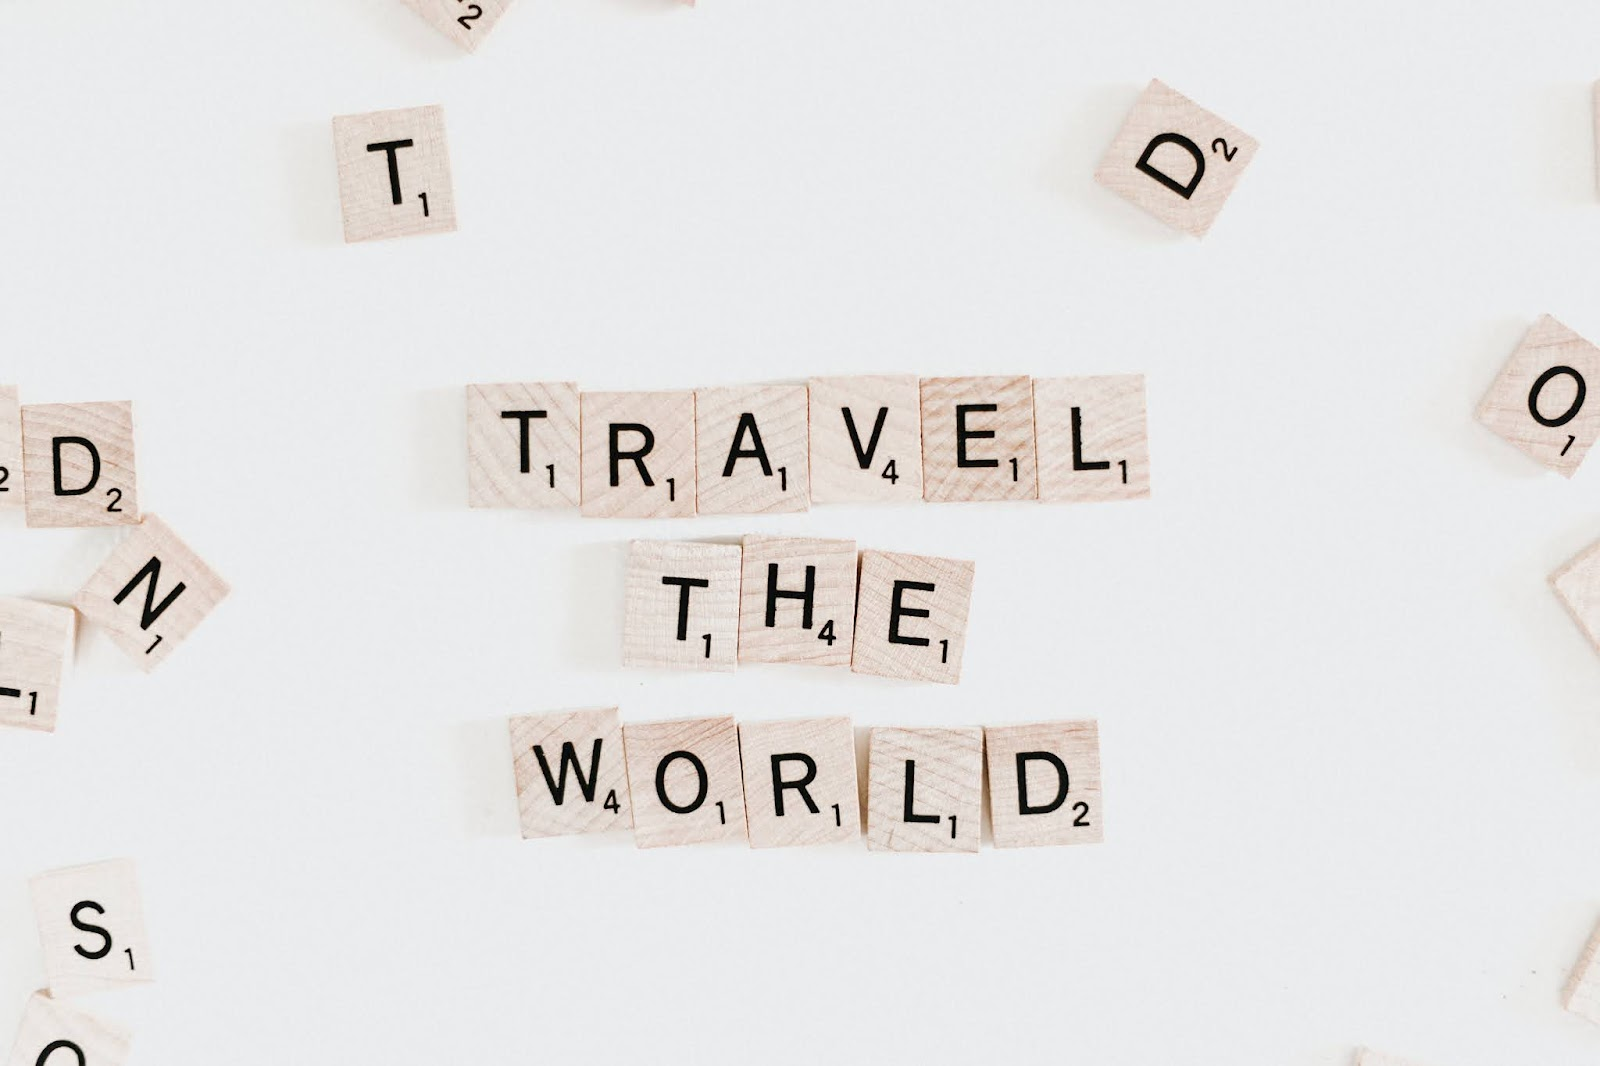 PLAY TRAVEL QUIZZES, RIDDLES